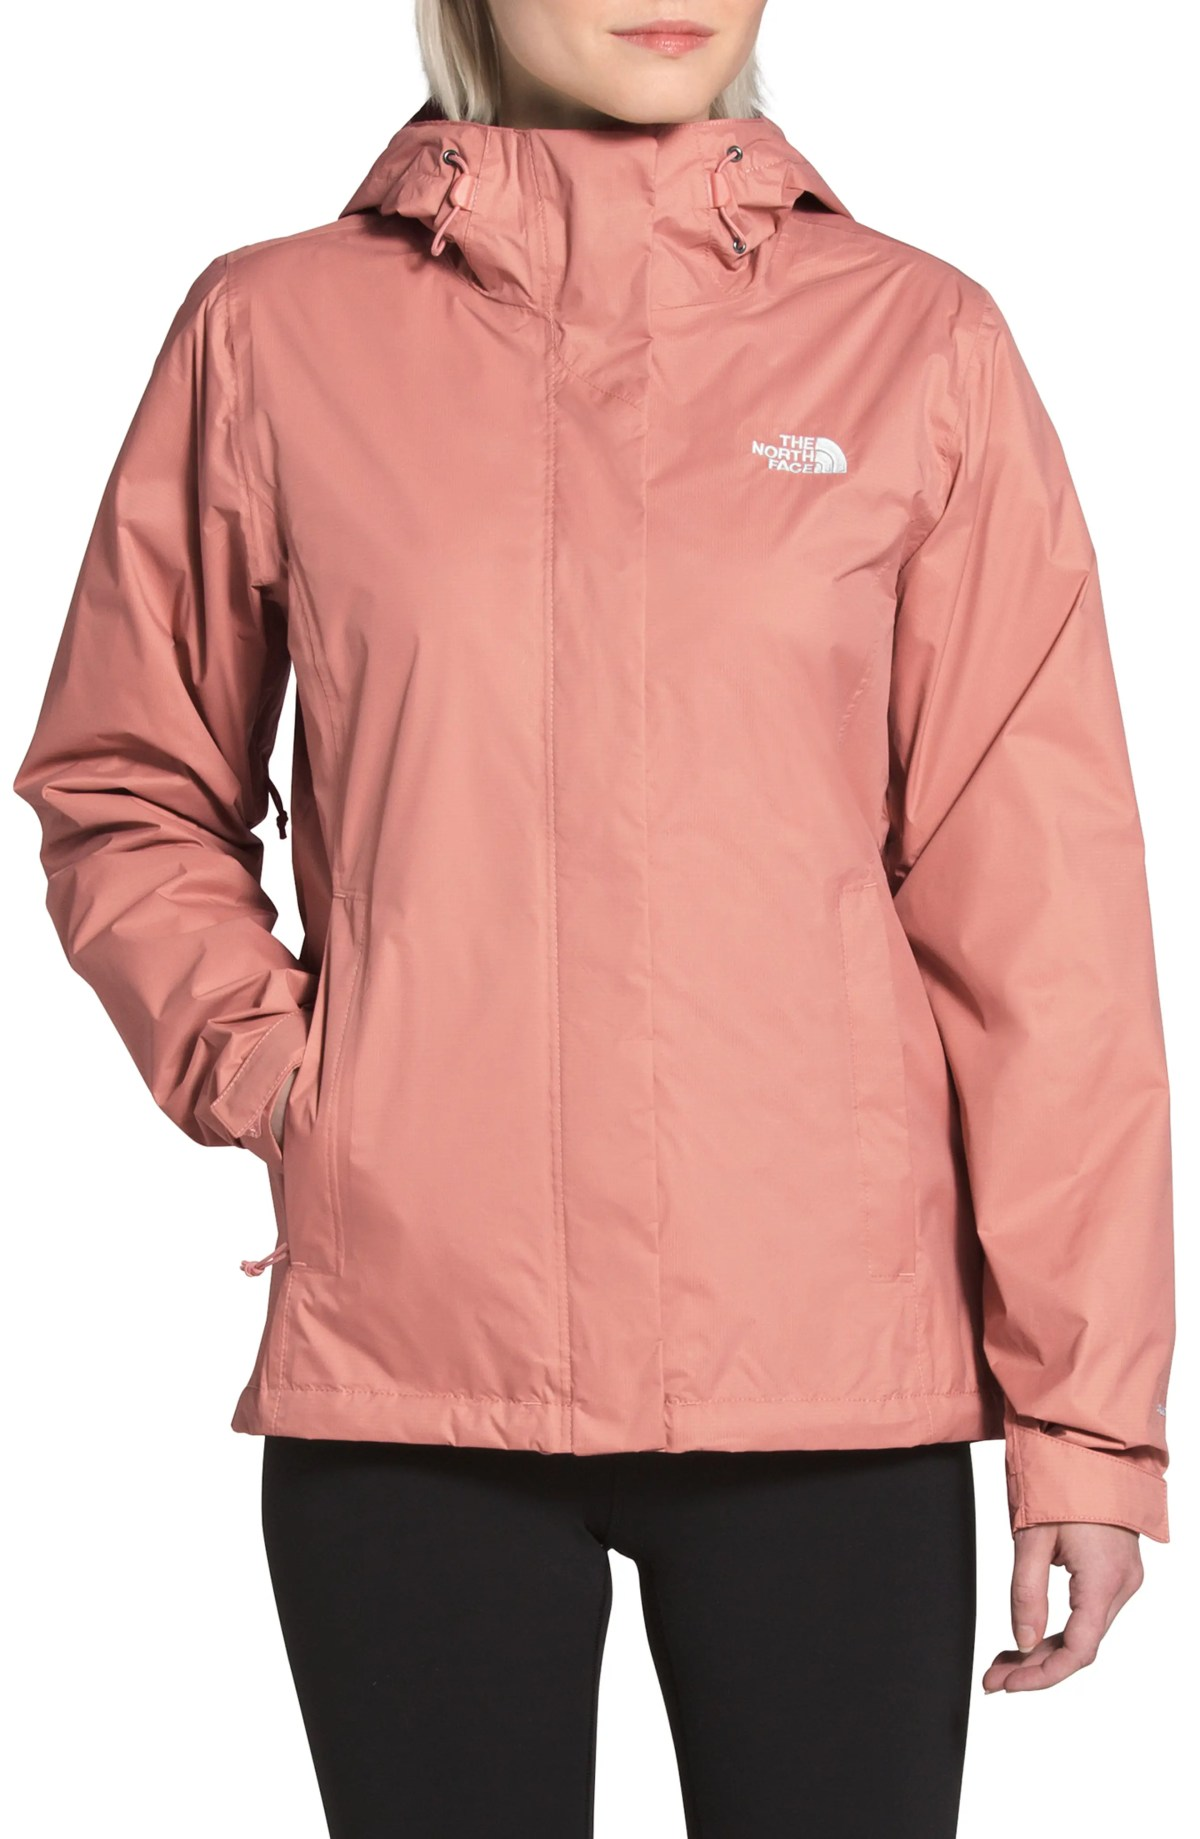 THE NORTH FACE Venture 2 Waterproof Jacket, Main, color, PINK CLAY